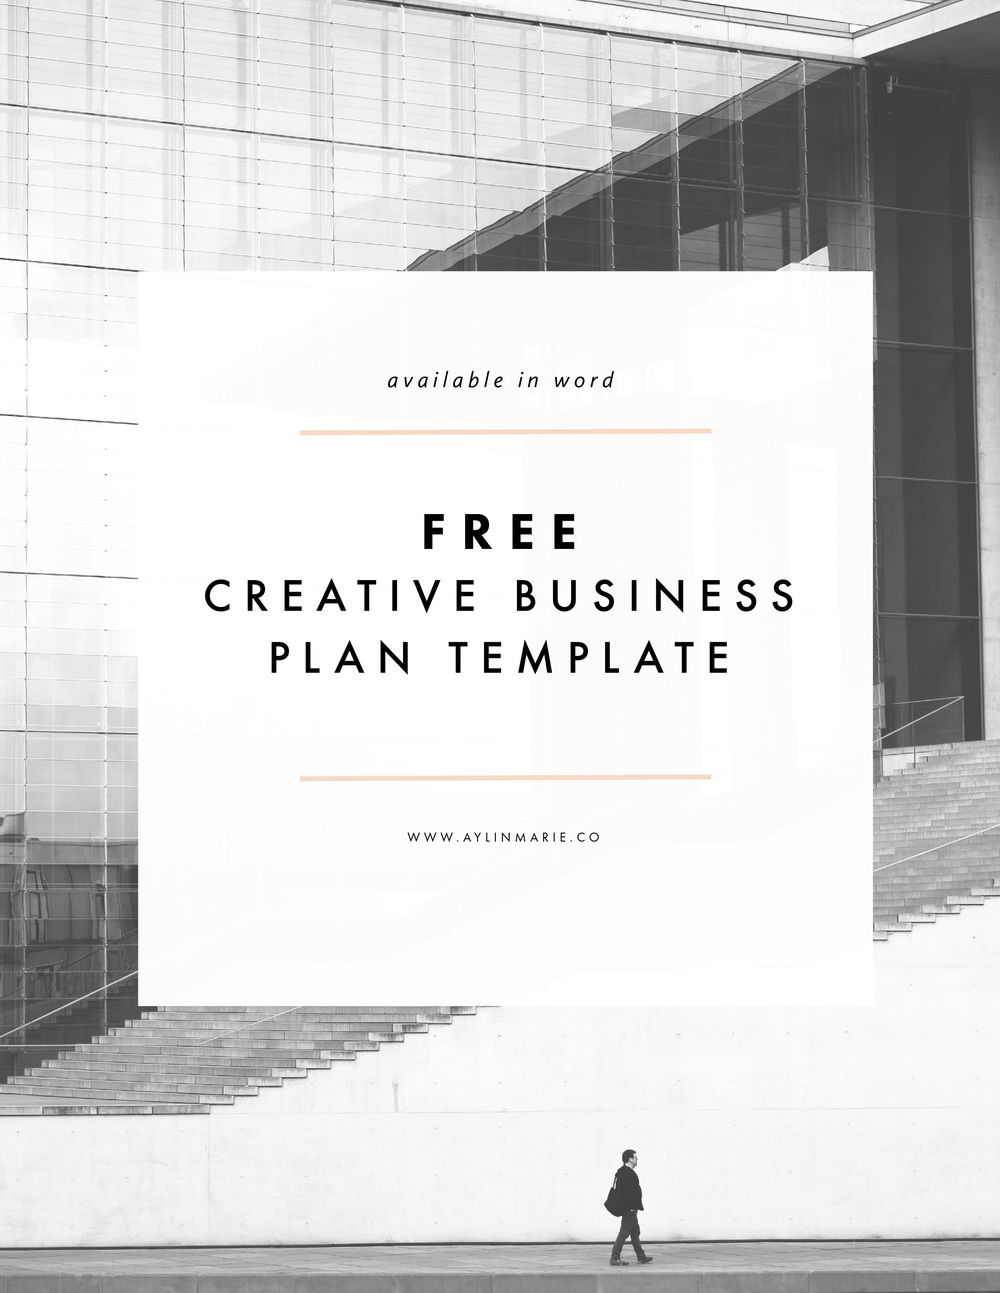 Freebie creative business plan template aylin marie freebie creative business plan template wajeb